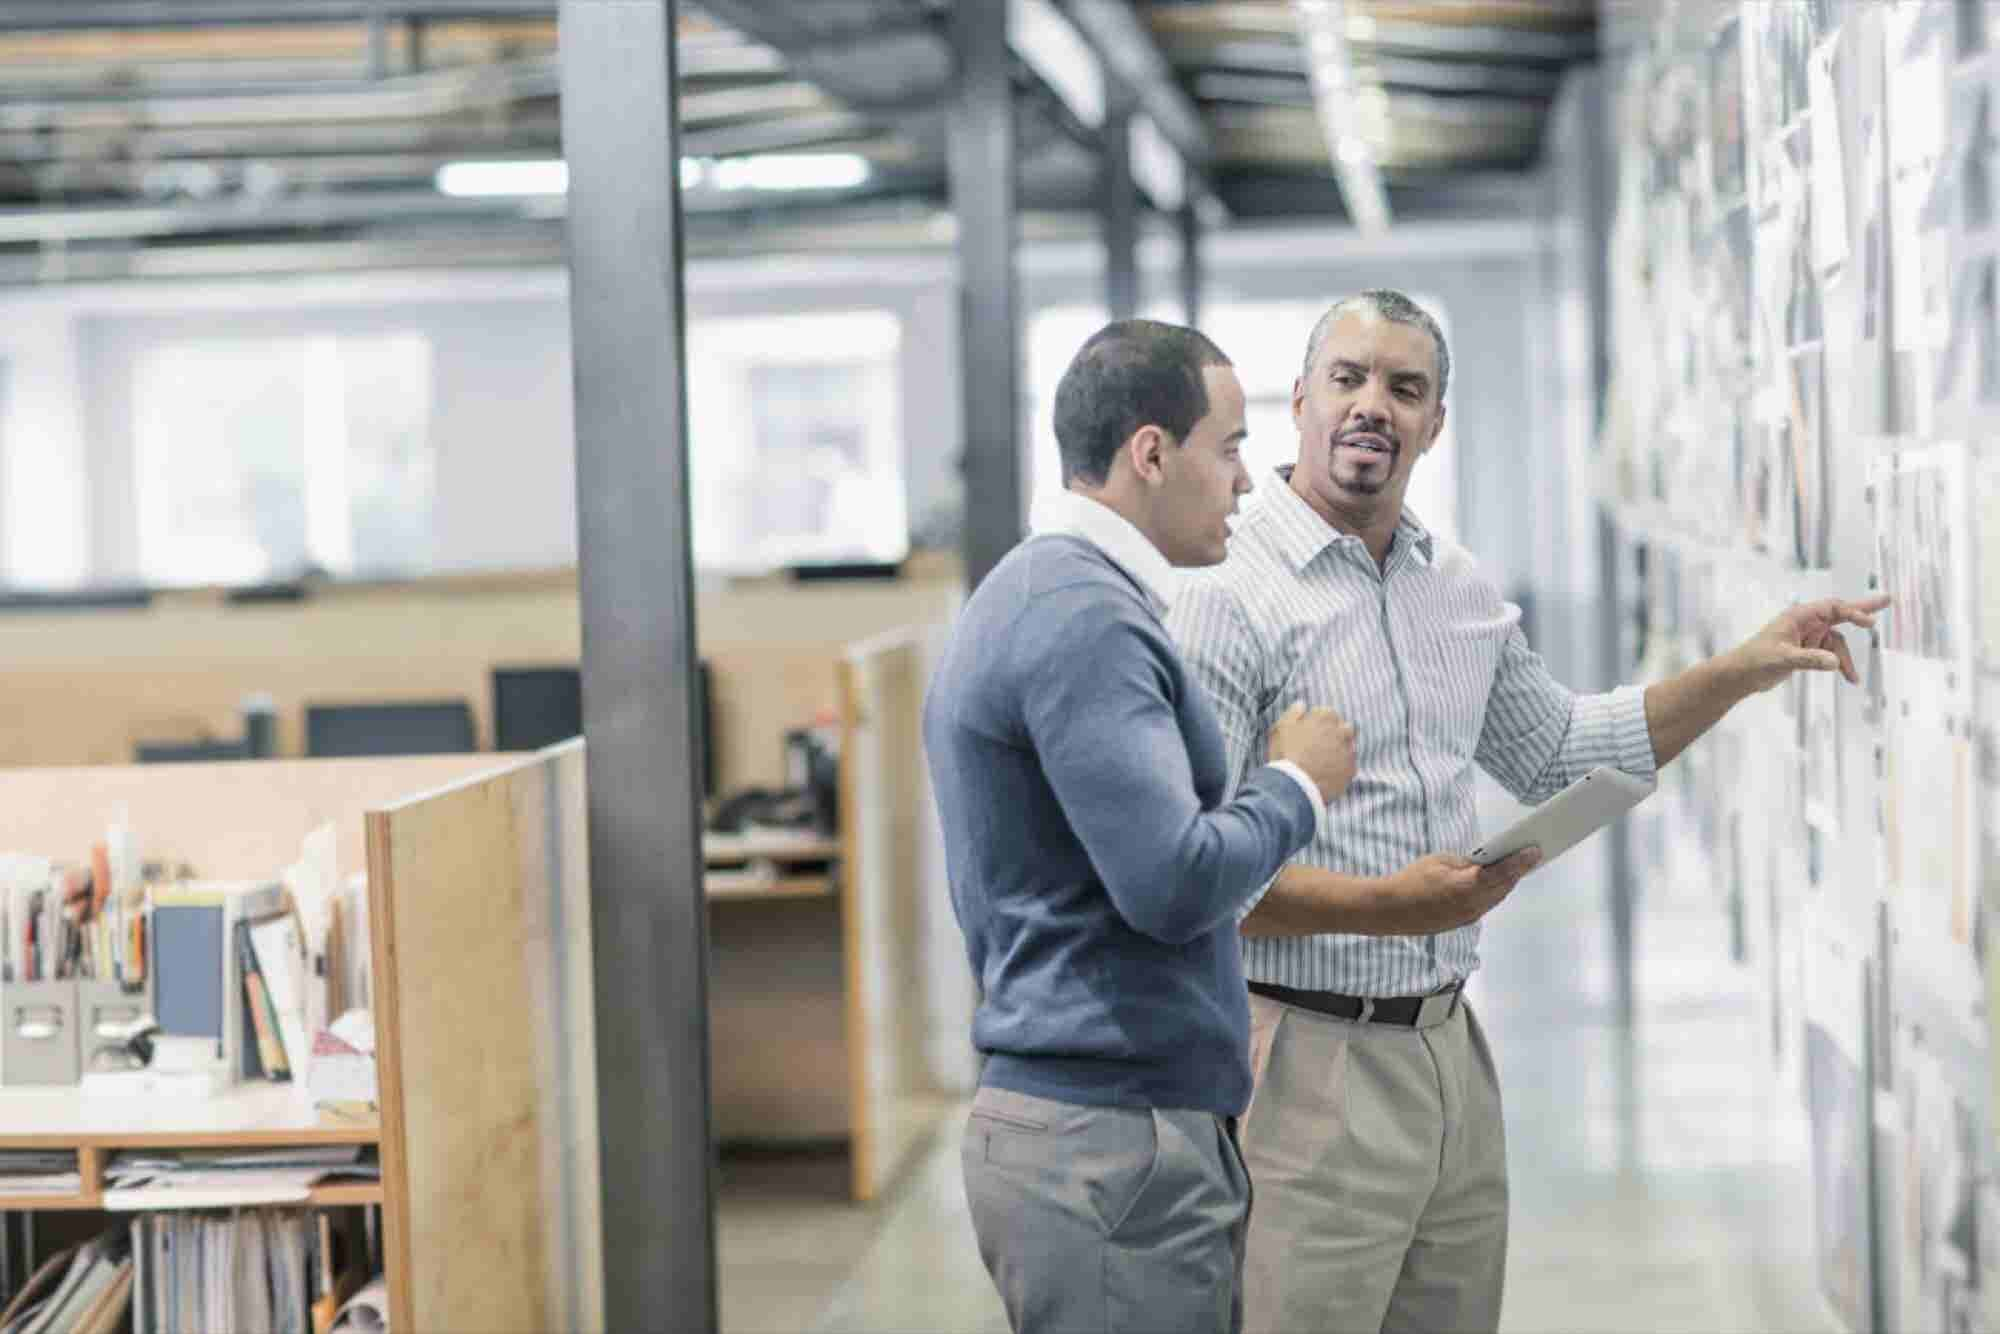 4 Ways to Coach the Uncoachable Employee